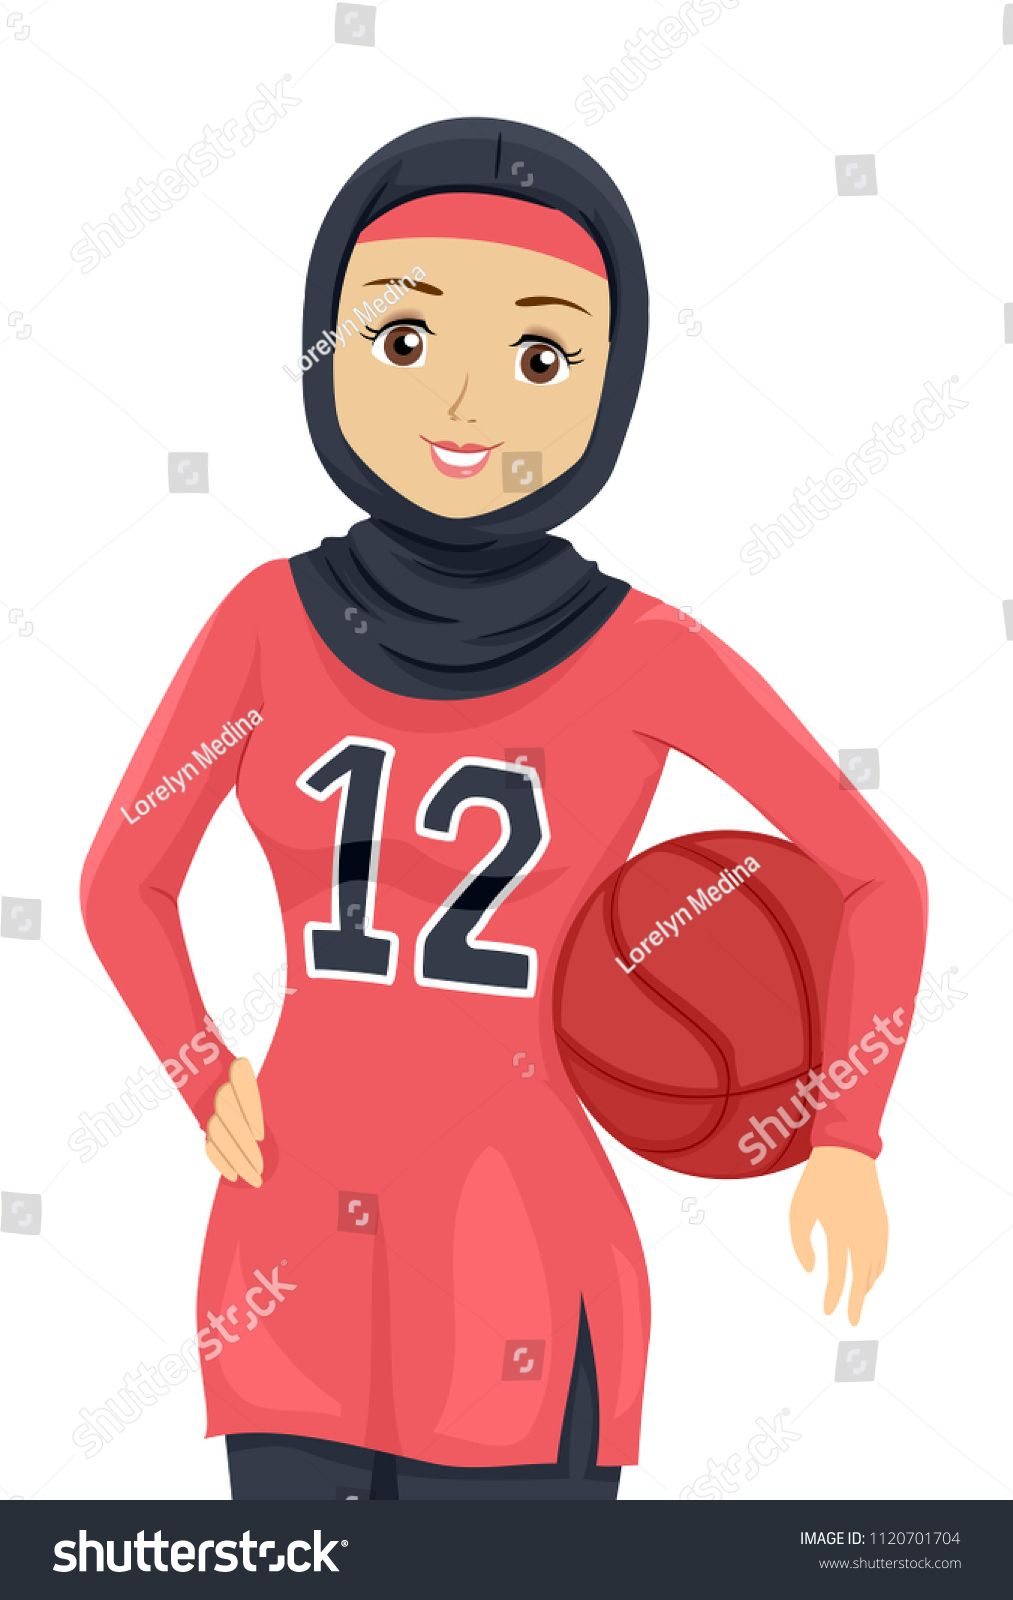 Illustration of a Teenage Muslim Girl Wearing Athletic Clothes and